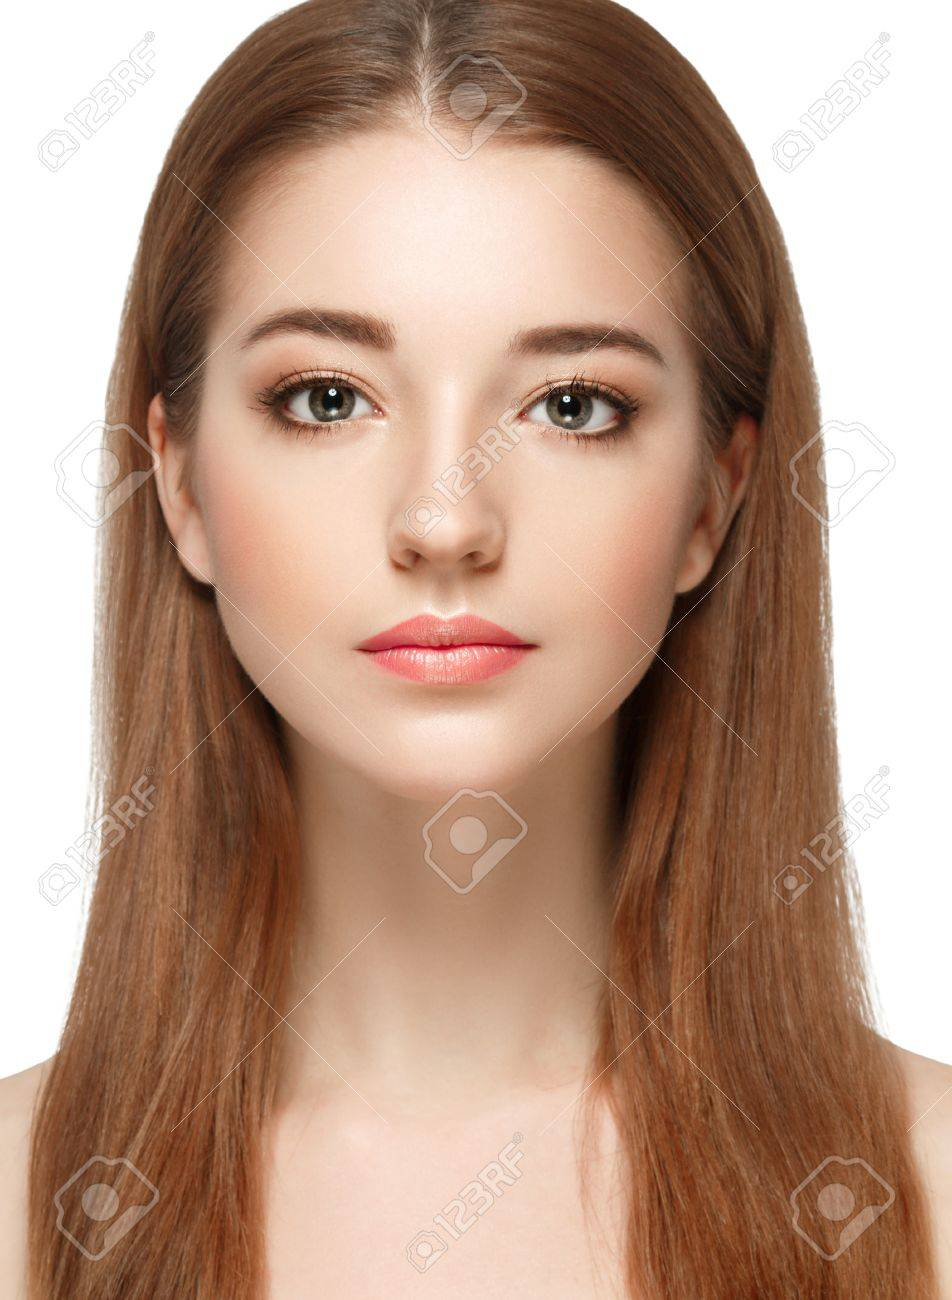 Beautiful woman face close up portrait young. Isolated on white. Studio shot. - 63639402